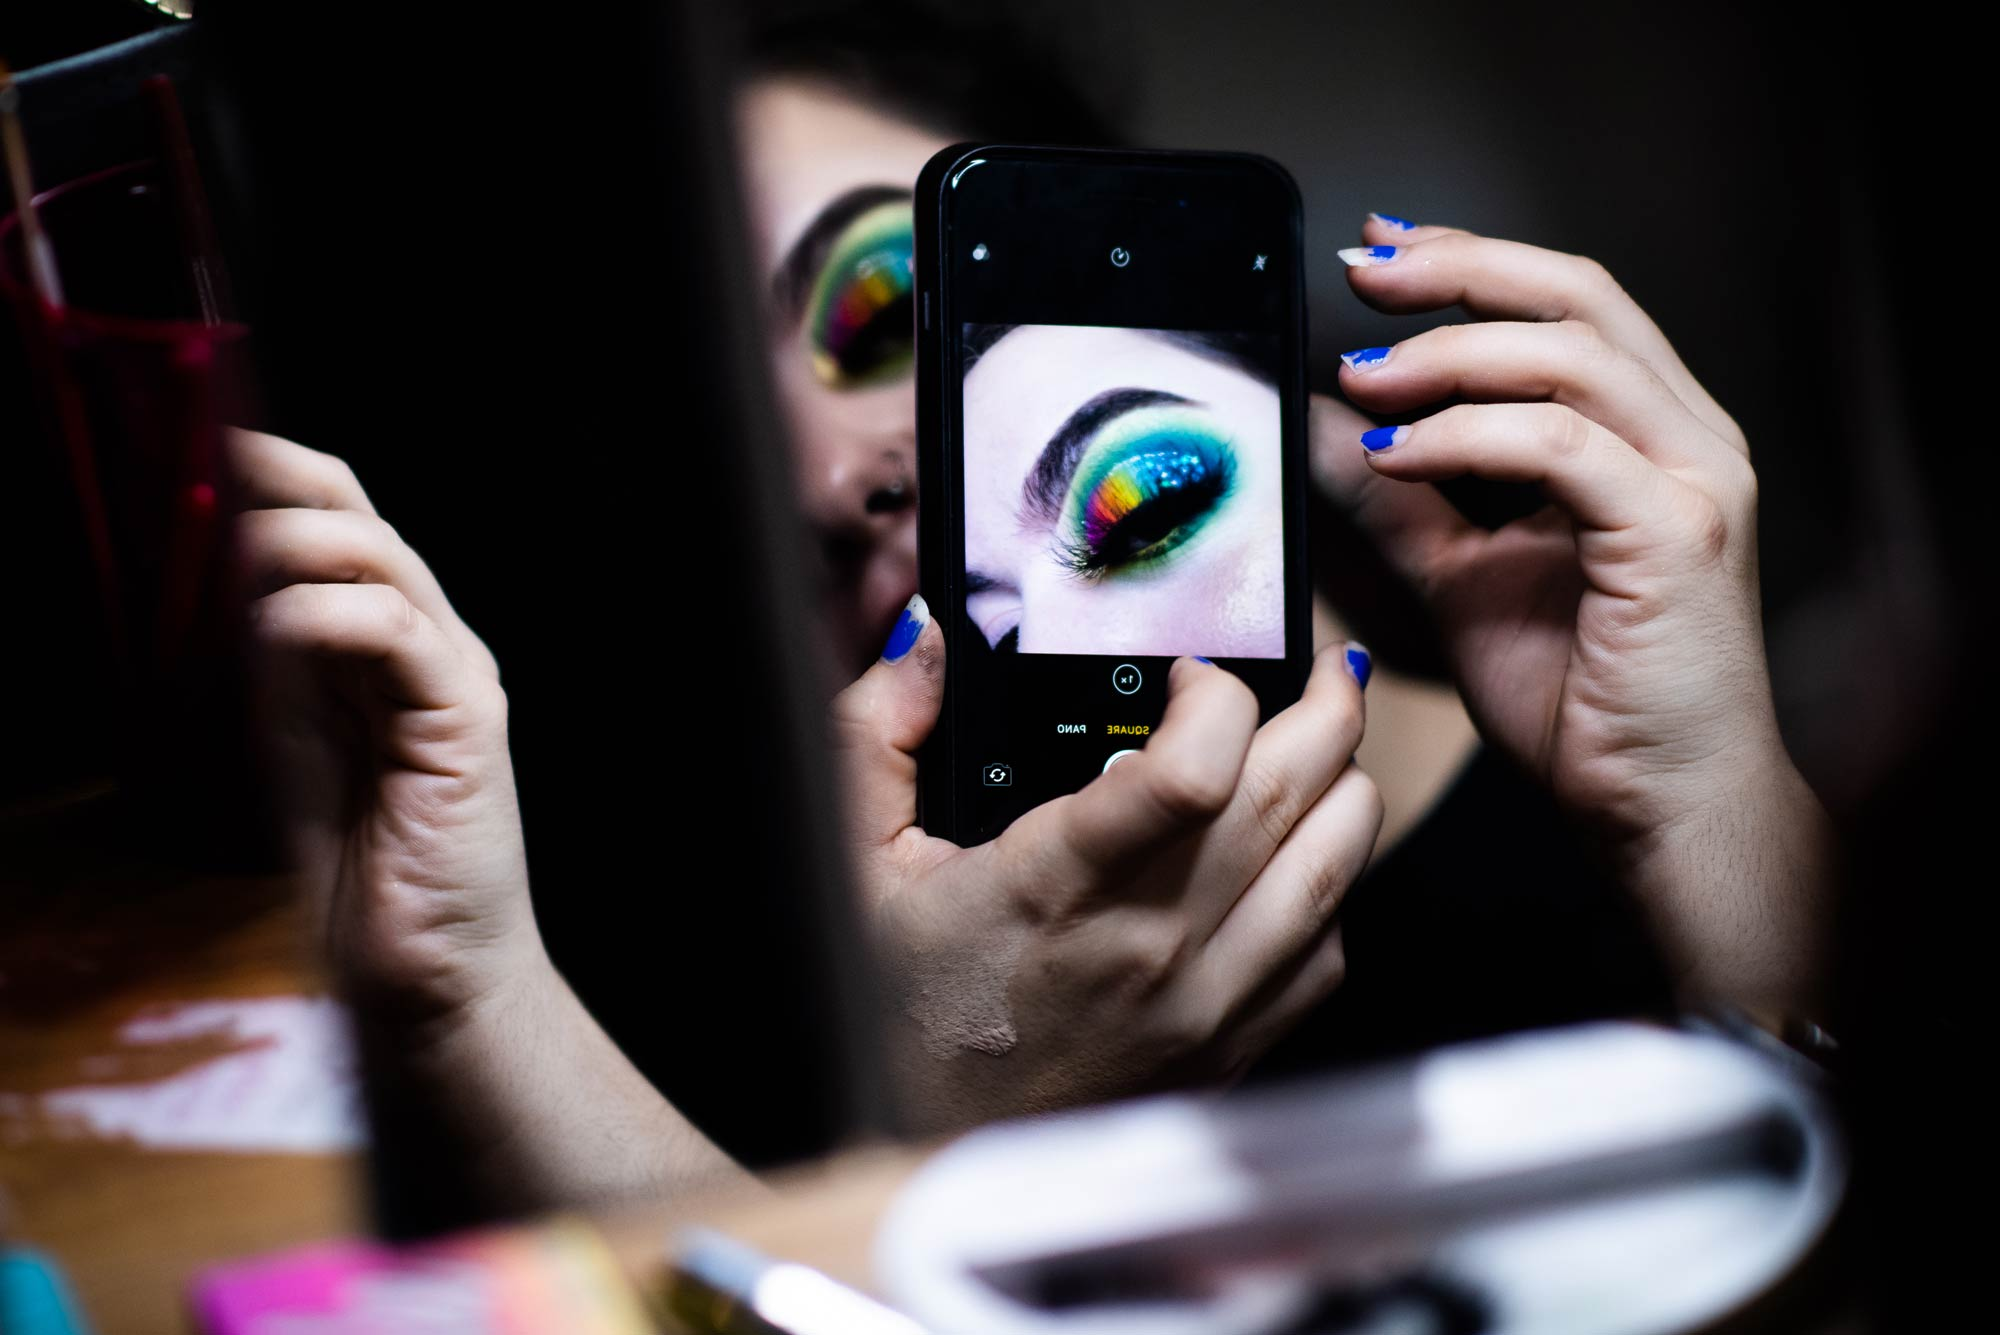 A woman wearing make up takes a photo of her eye with an iPhone.